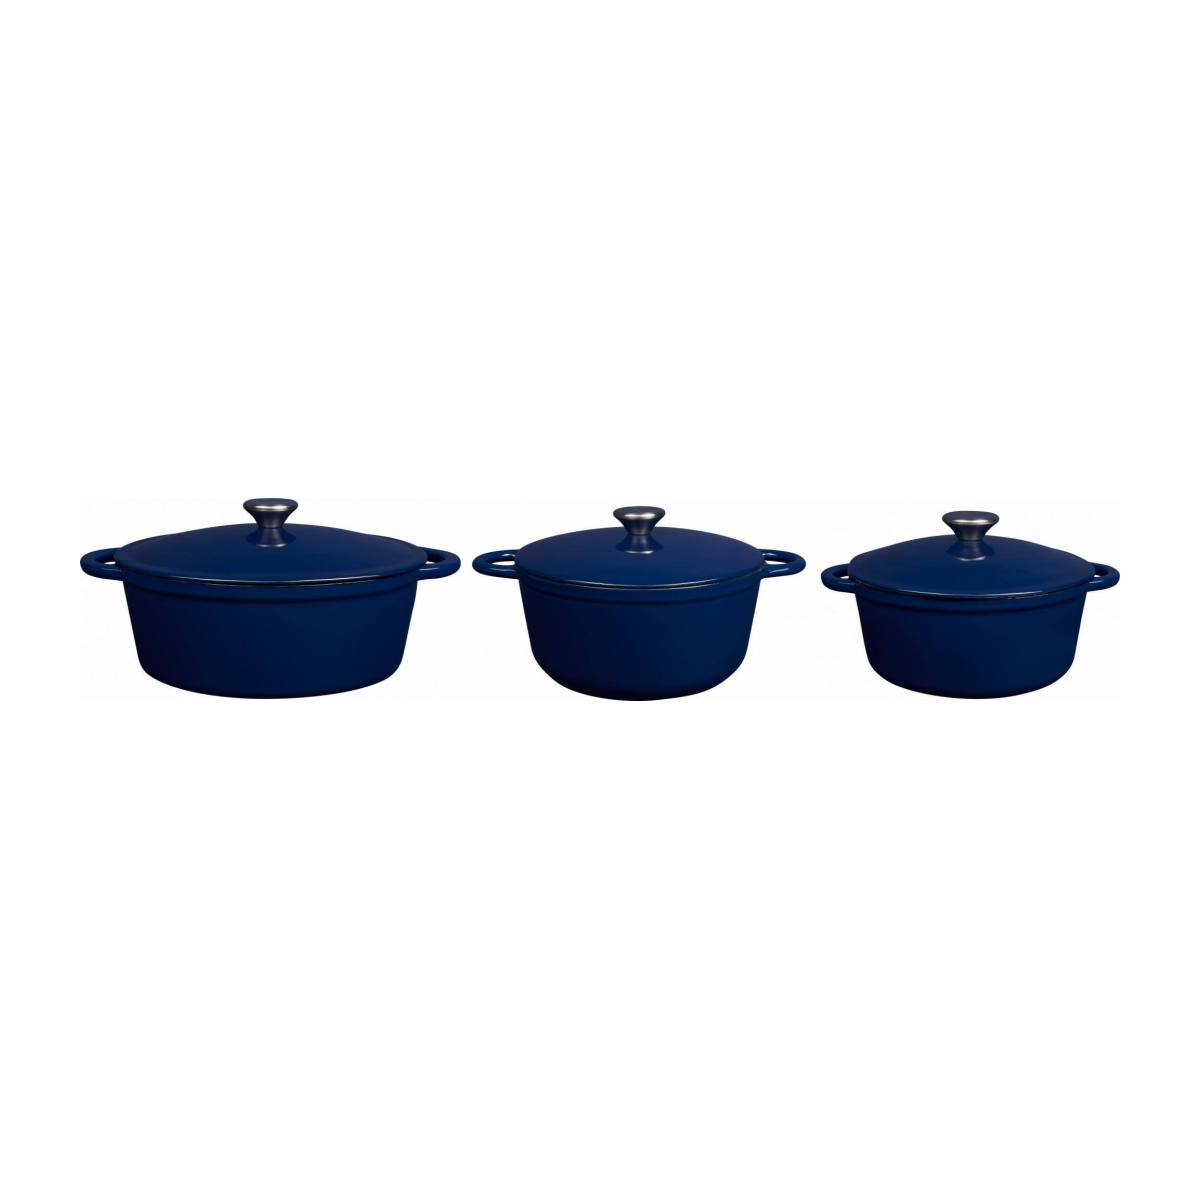 Cast iron cooker 23 cm, blue n°6